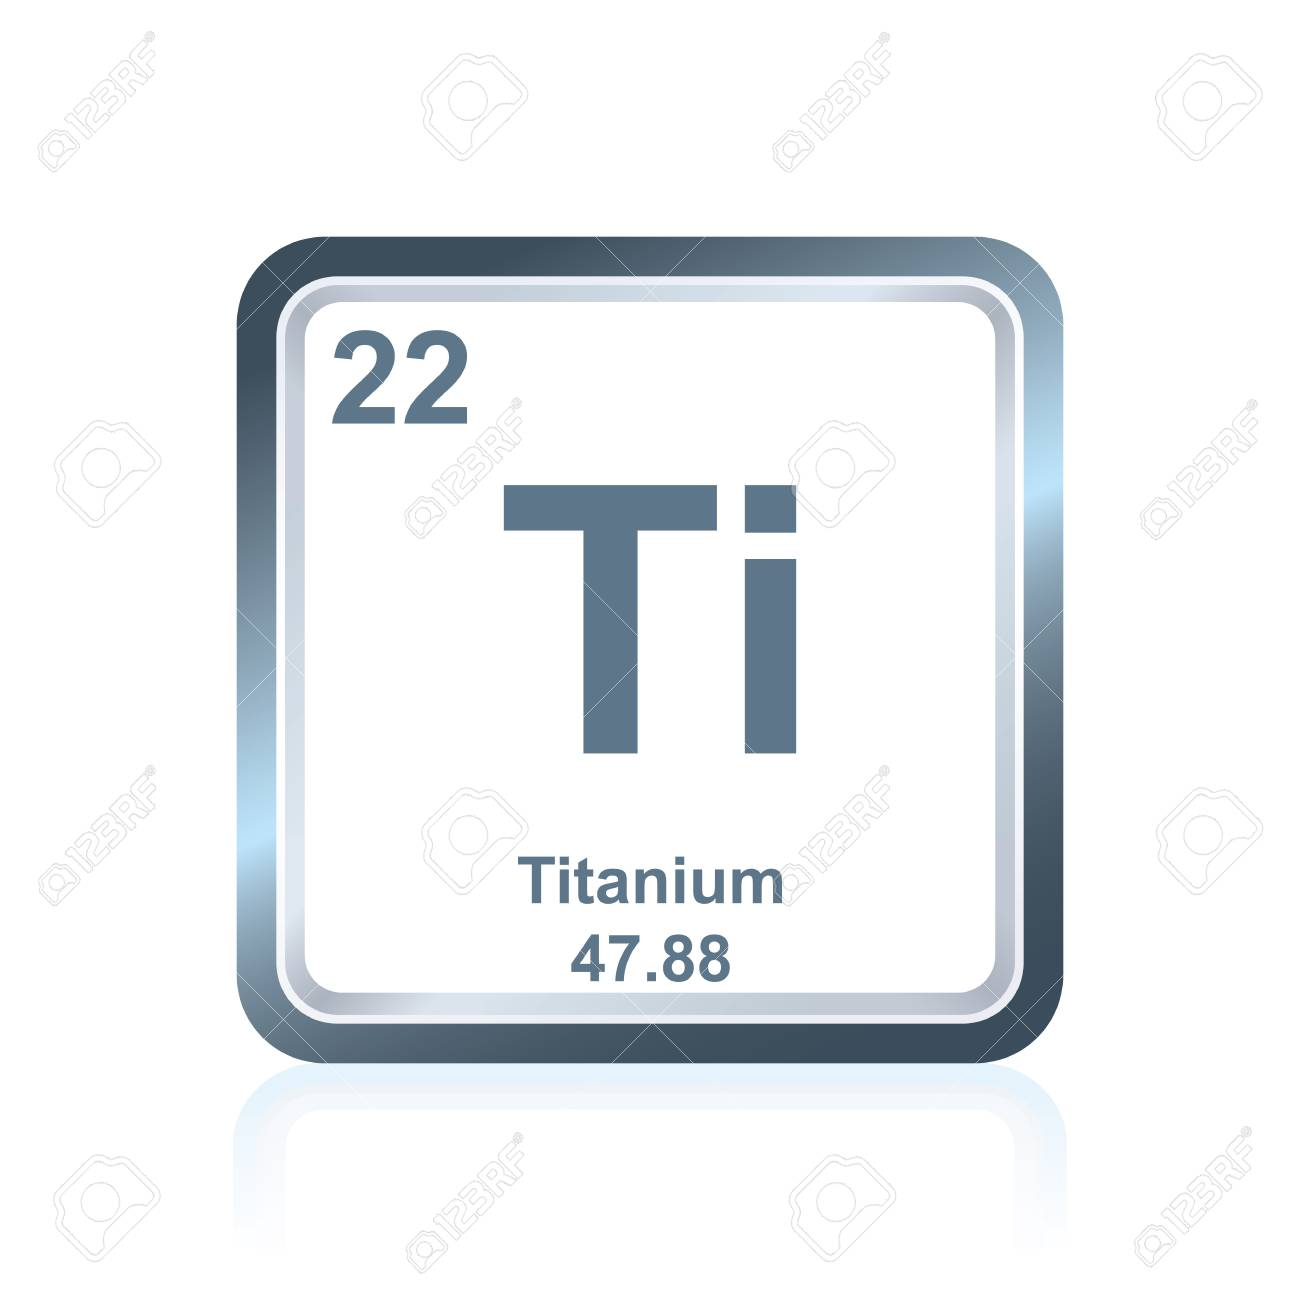 Symbol of chemical element titanium as seen on the periodic table symbol of chemical element titanium as seen on the periodic table of the elements including urtaz Gallery